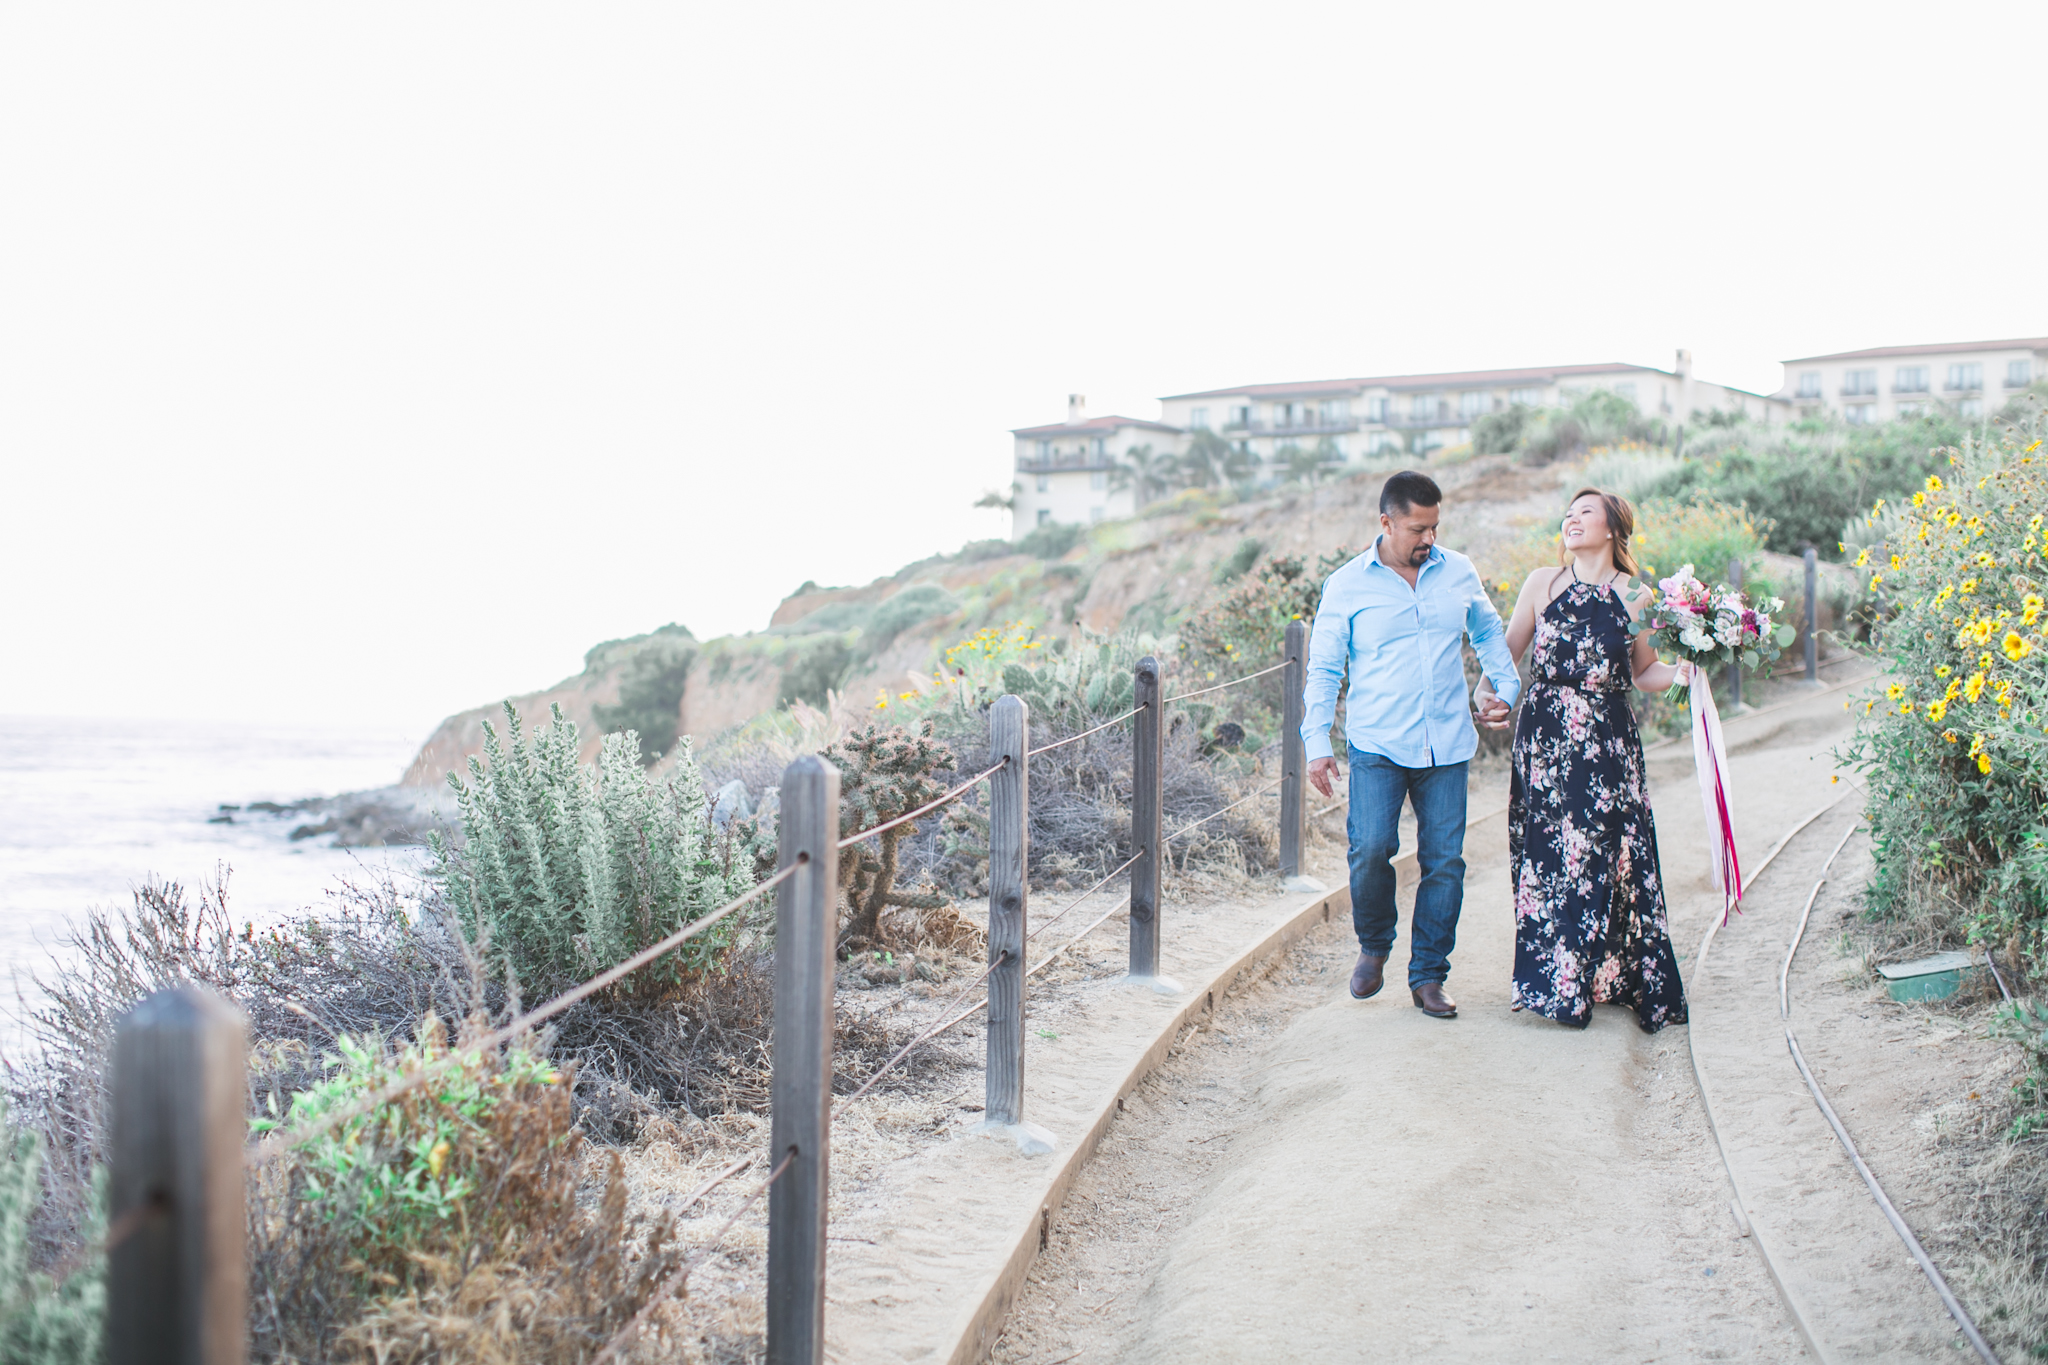 We took the engagement photos at Terranea Cove because of it's natural beauty surroundings and cool Cali-vibe.